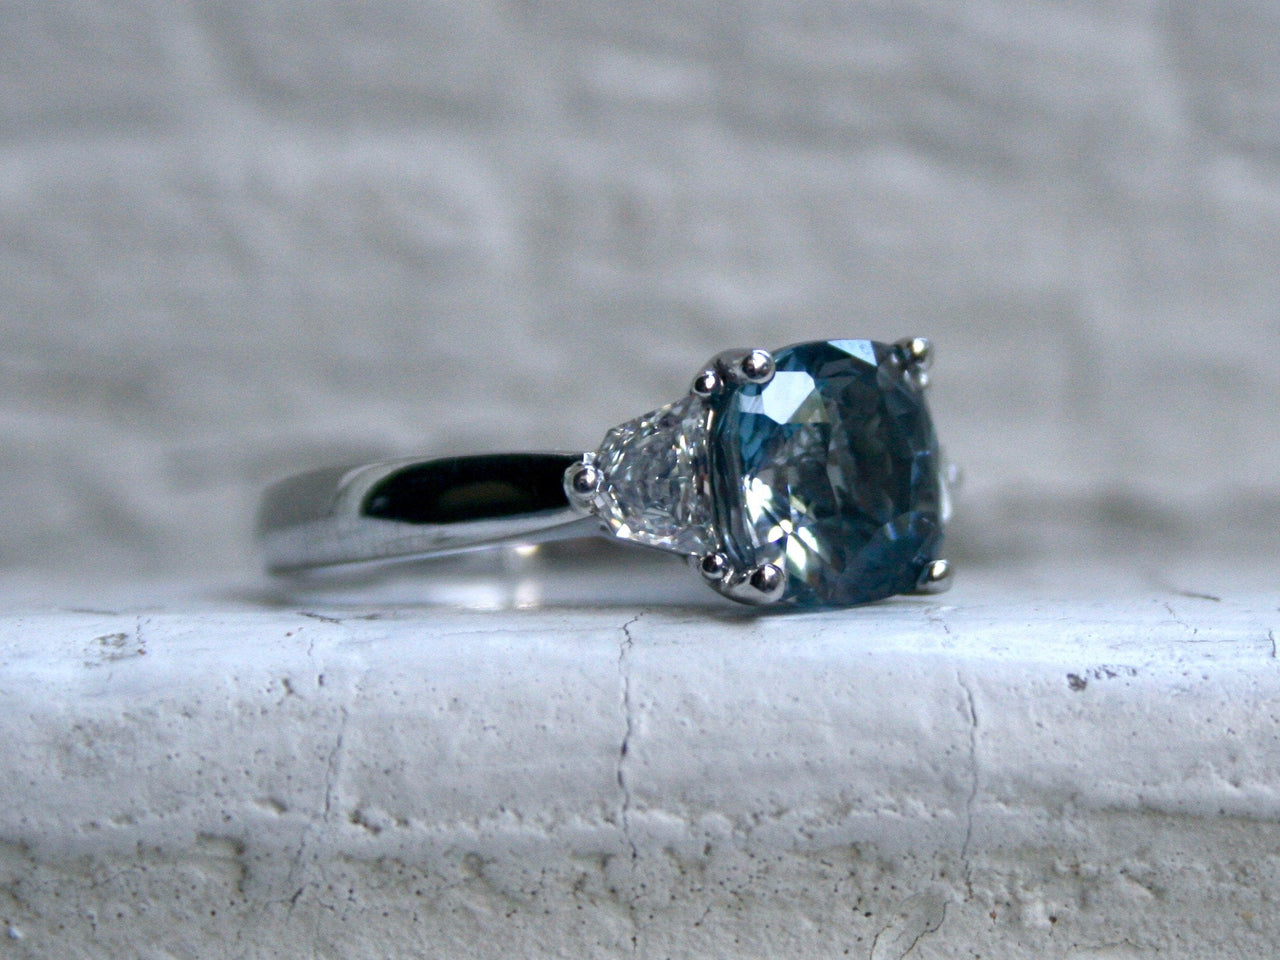 Gorgeous Platinum Ceylon Sapphire Engagement Three Stone Ring with Shield Cut Diamonds - 3.69ct.